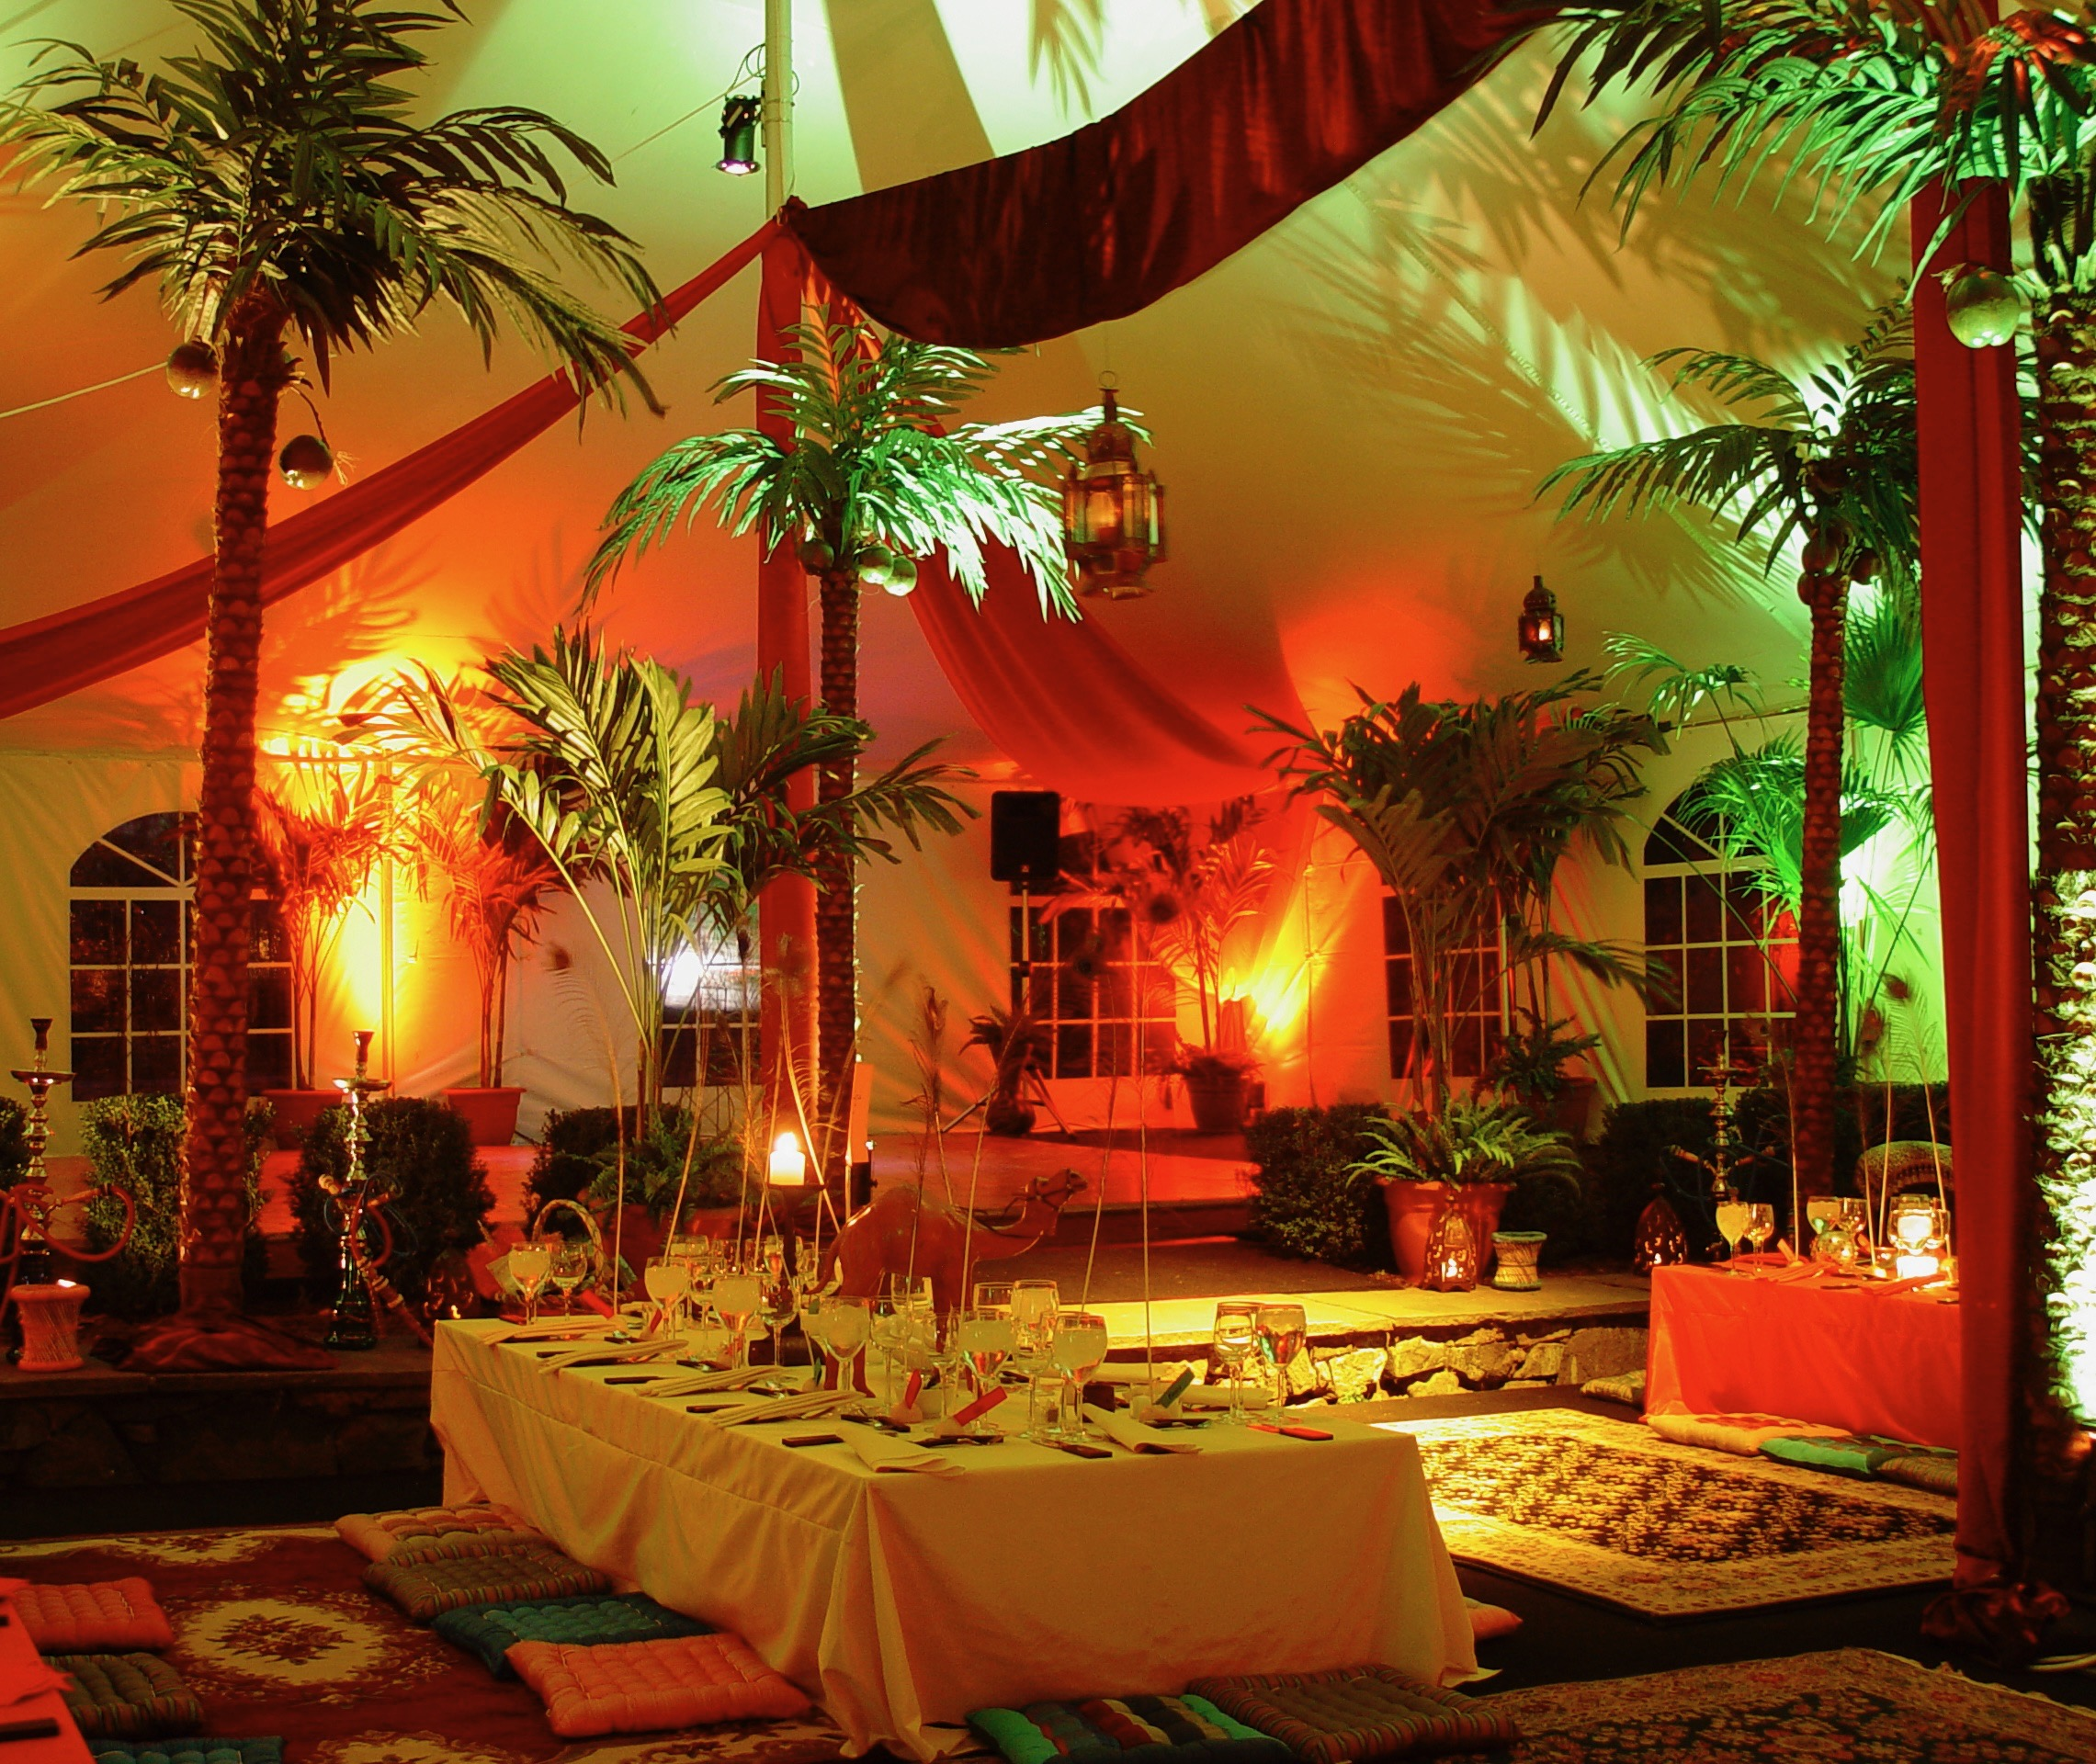 Moroccan+morocco+themed+party+decor+design+event+rental+rentals+lighting+international+theme+eggsotic+events.jpeg